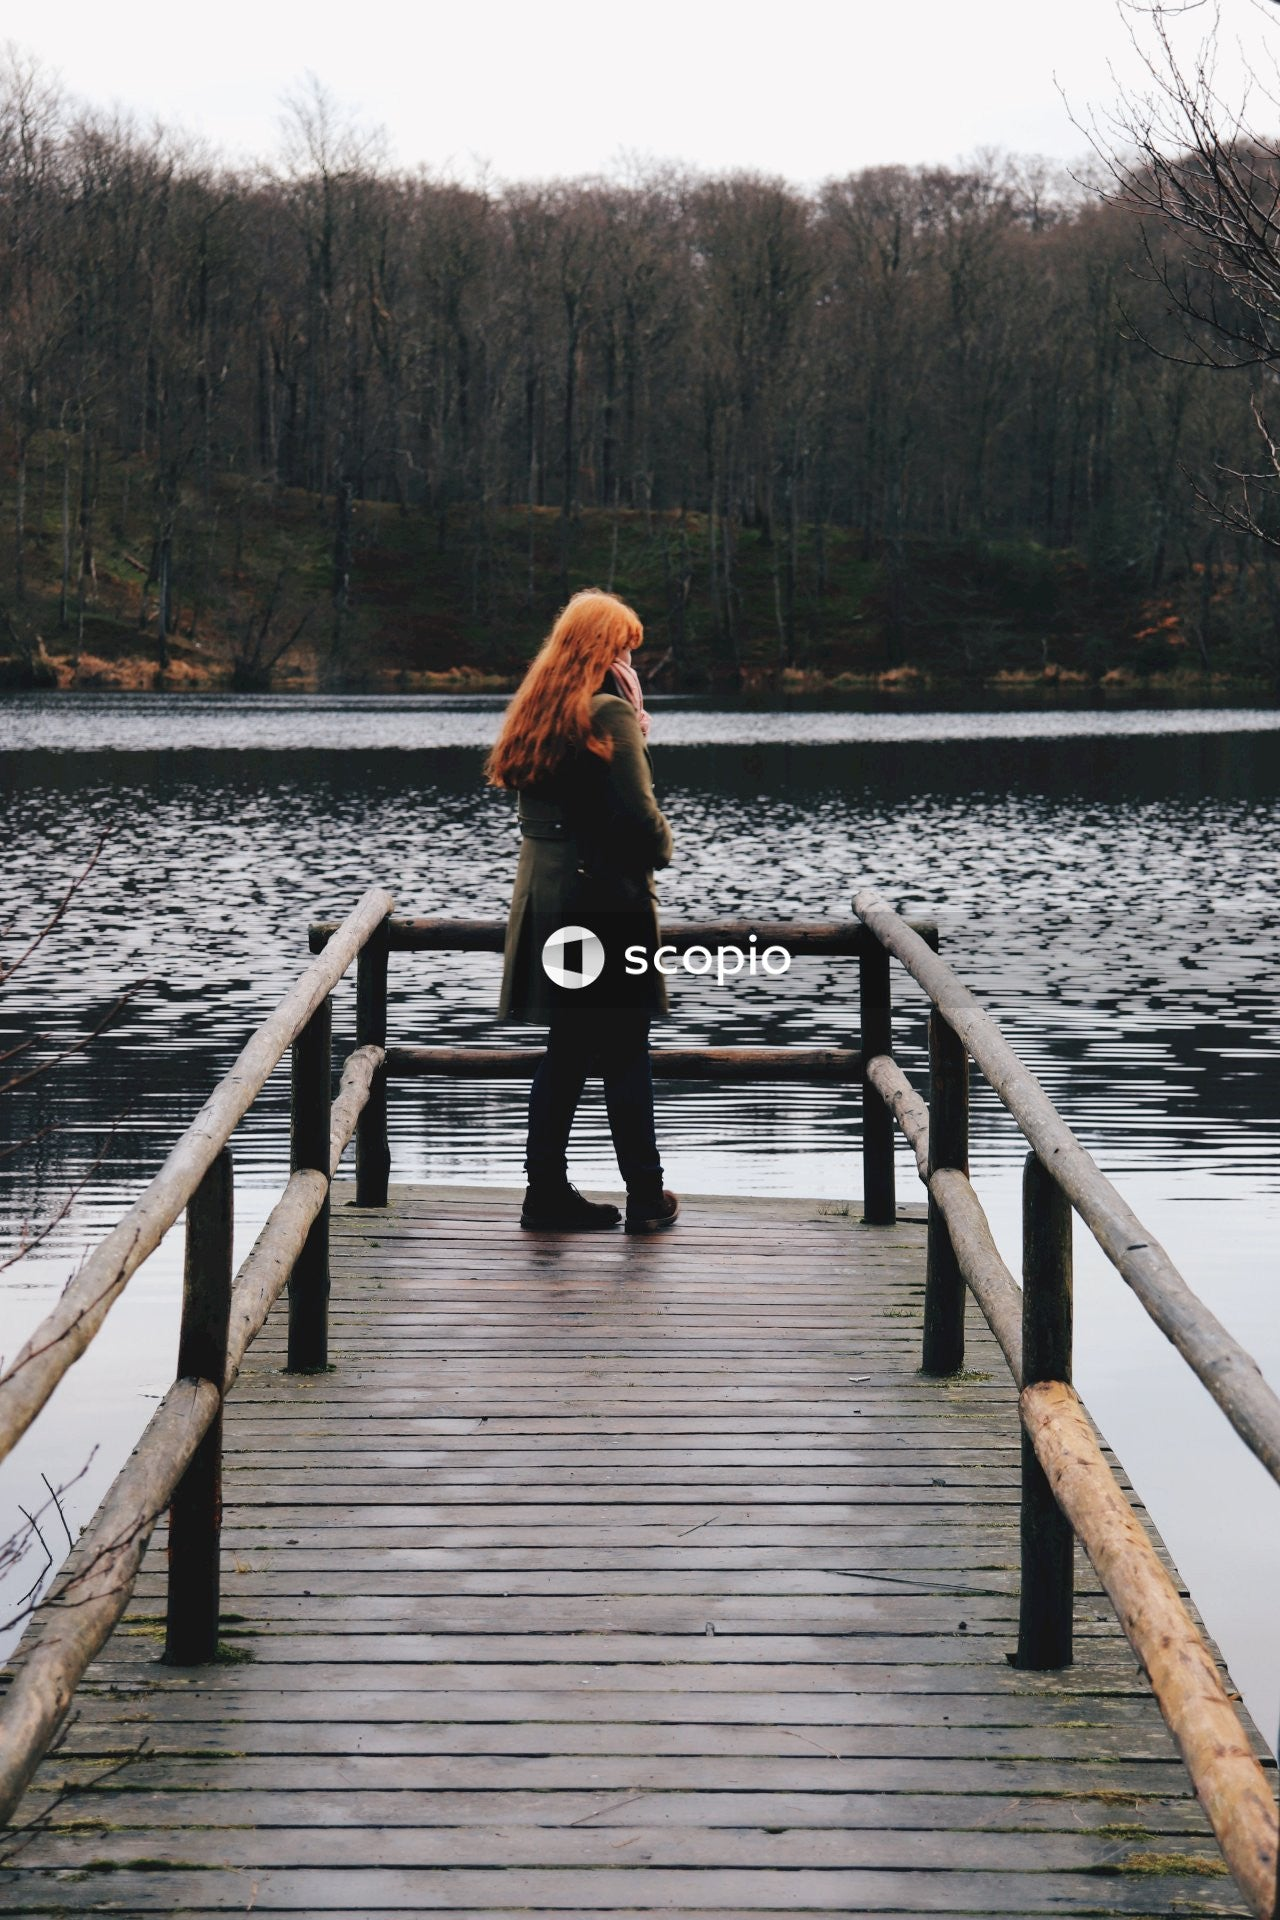 Woman in black long sleeve shirt and black pants standing on wooden dock